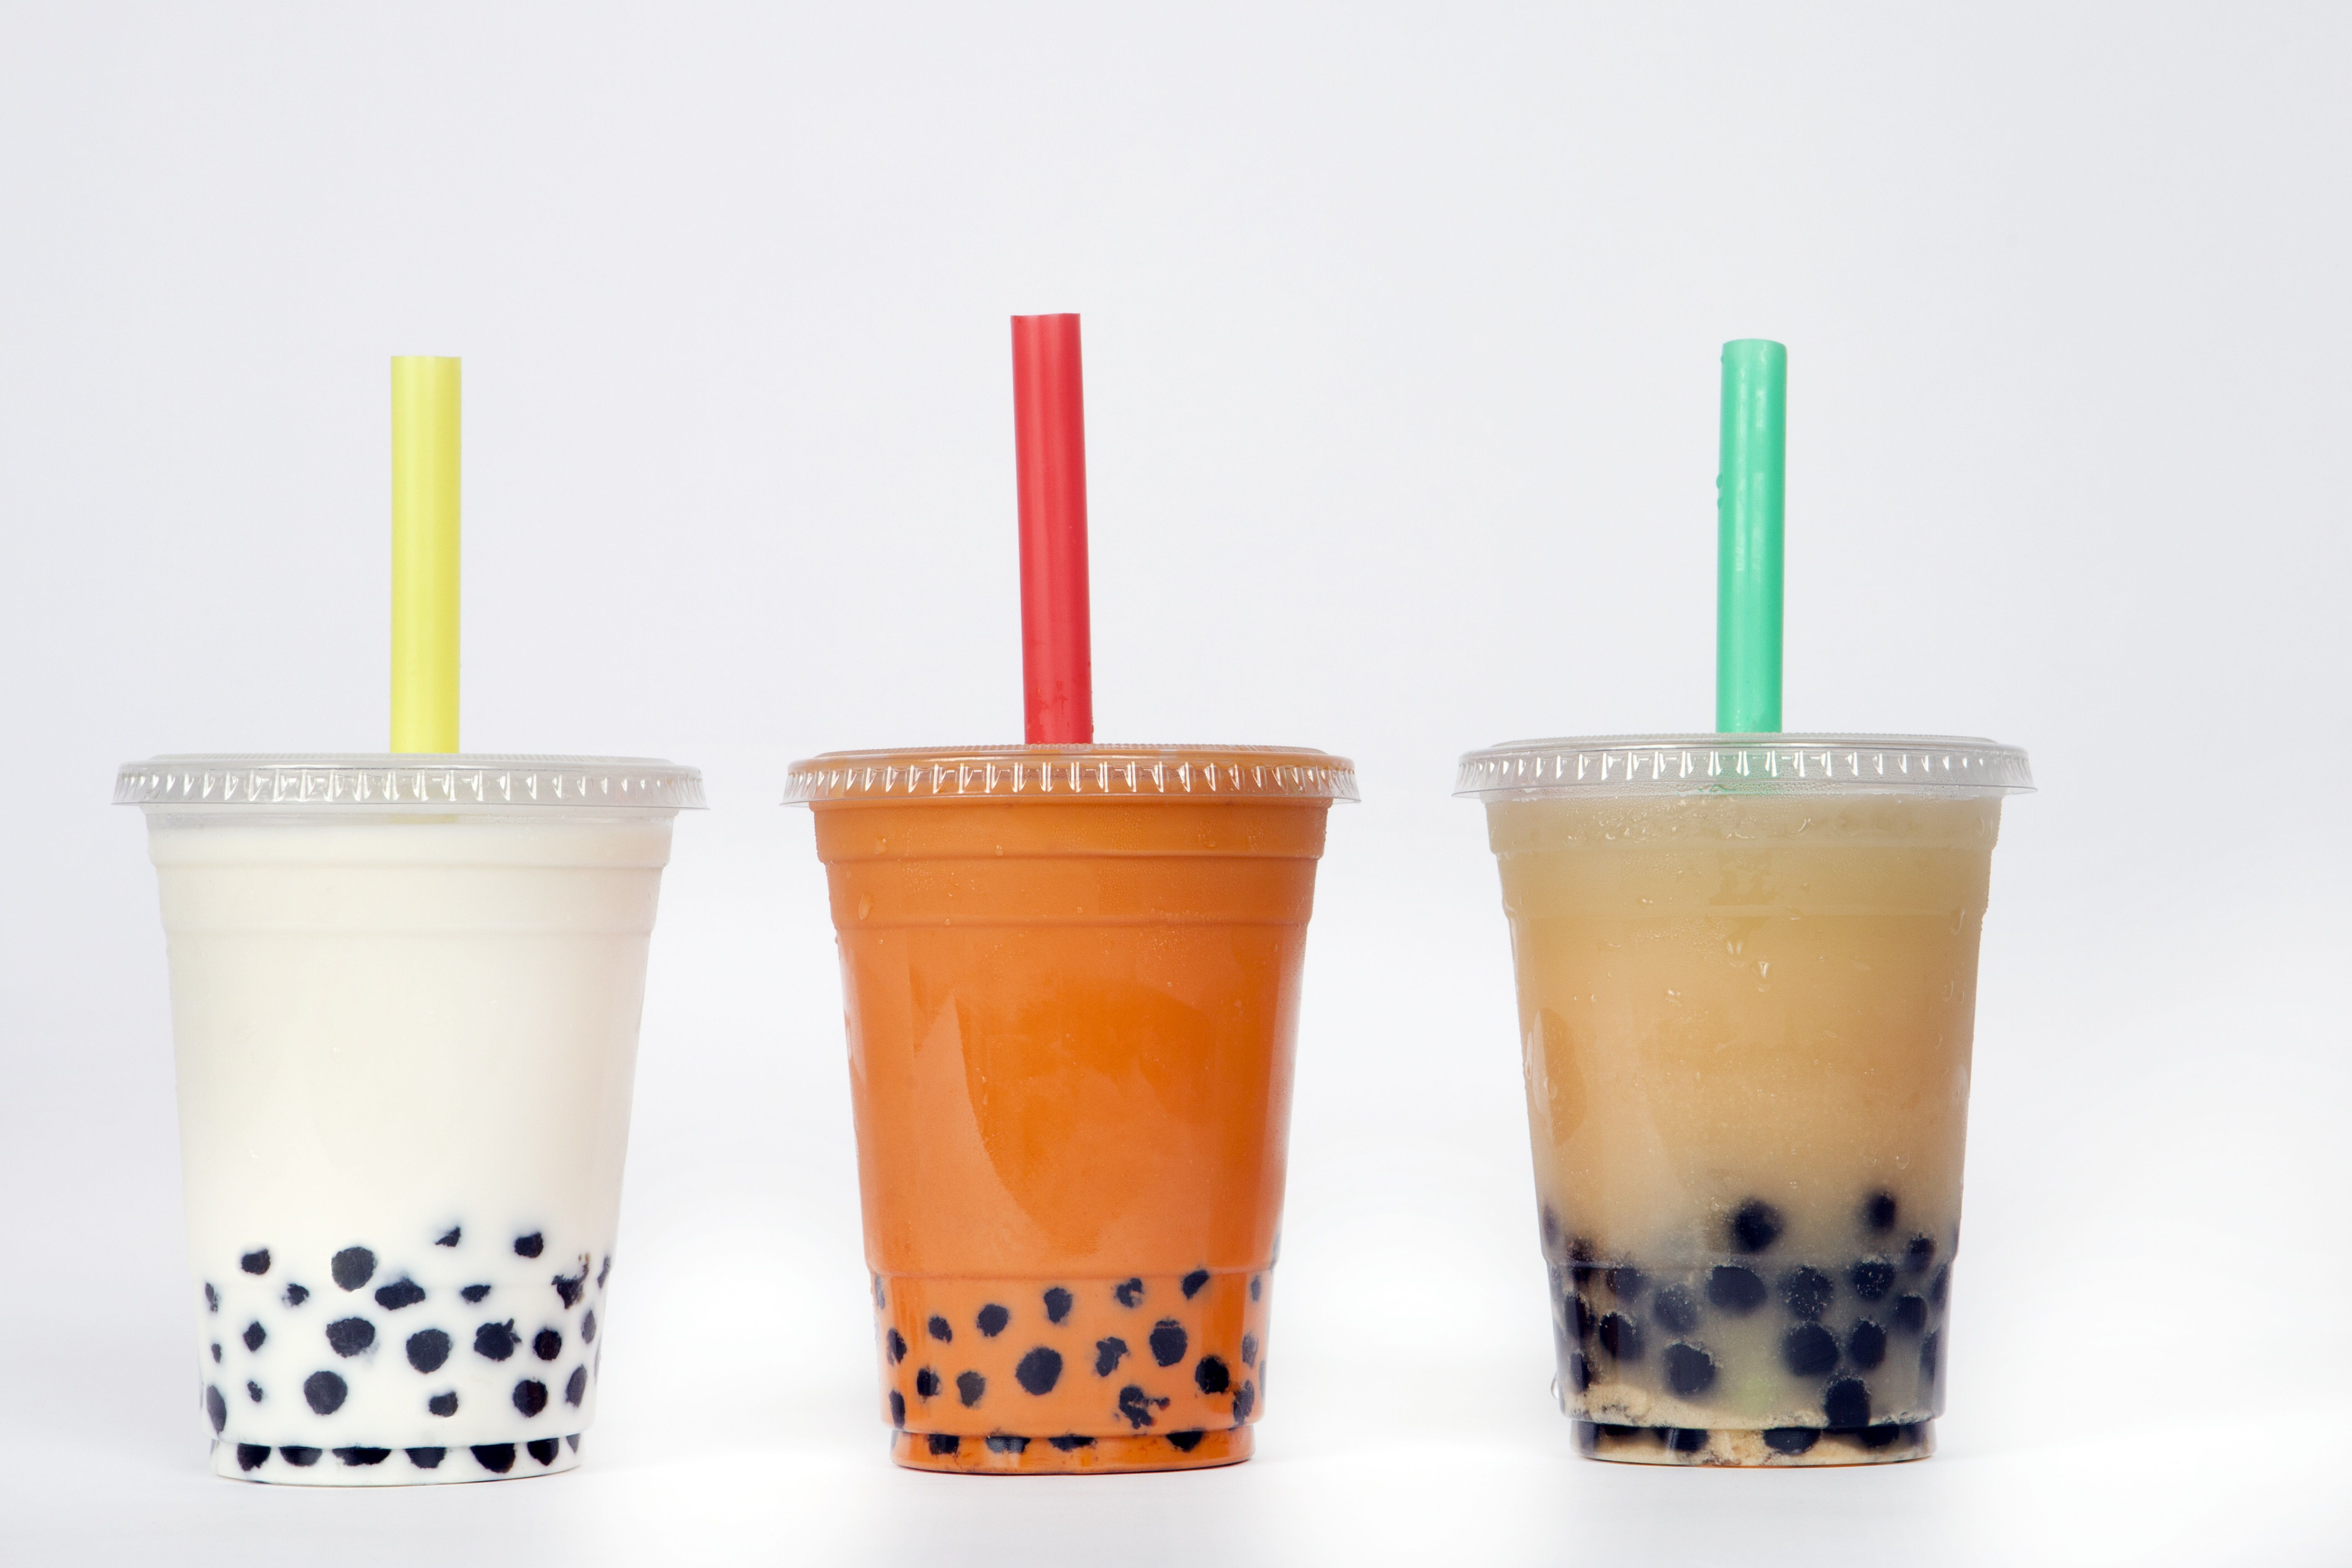 Bubble Tea Flavors: Over 30 Popular Flavors to Try